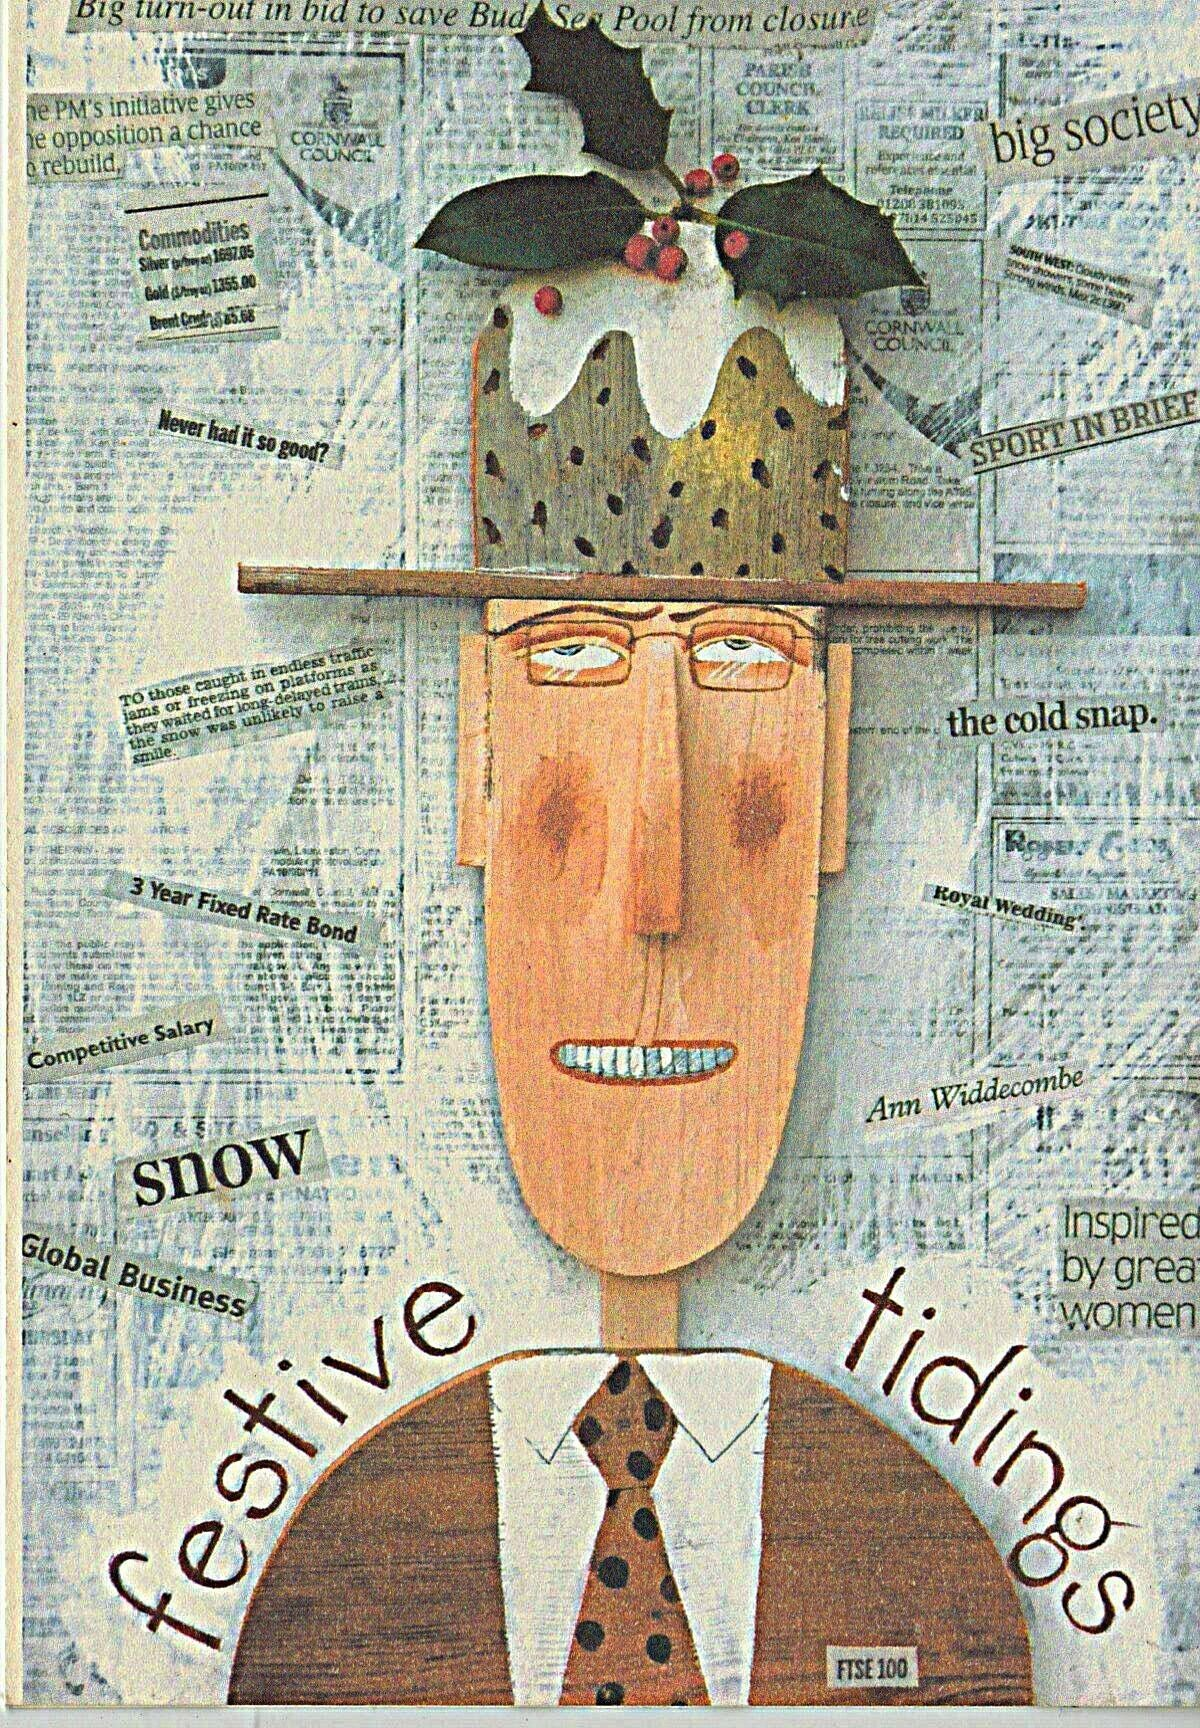 Pin by deena parsons on books, journals, and paper Slab